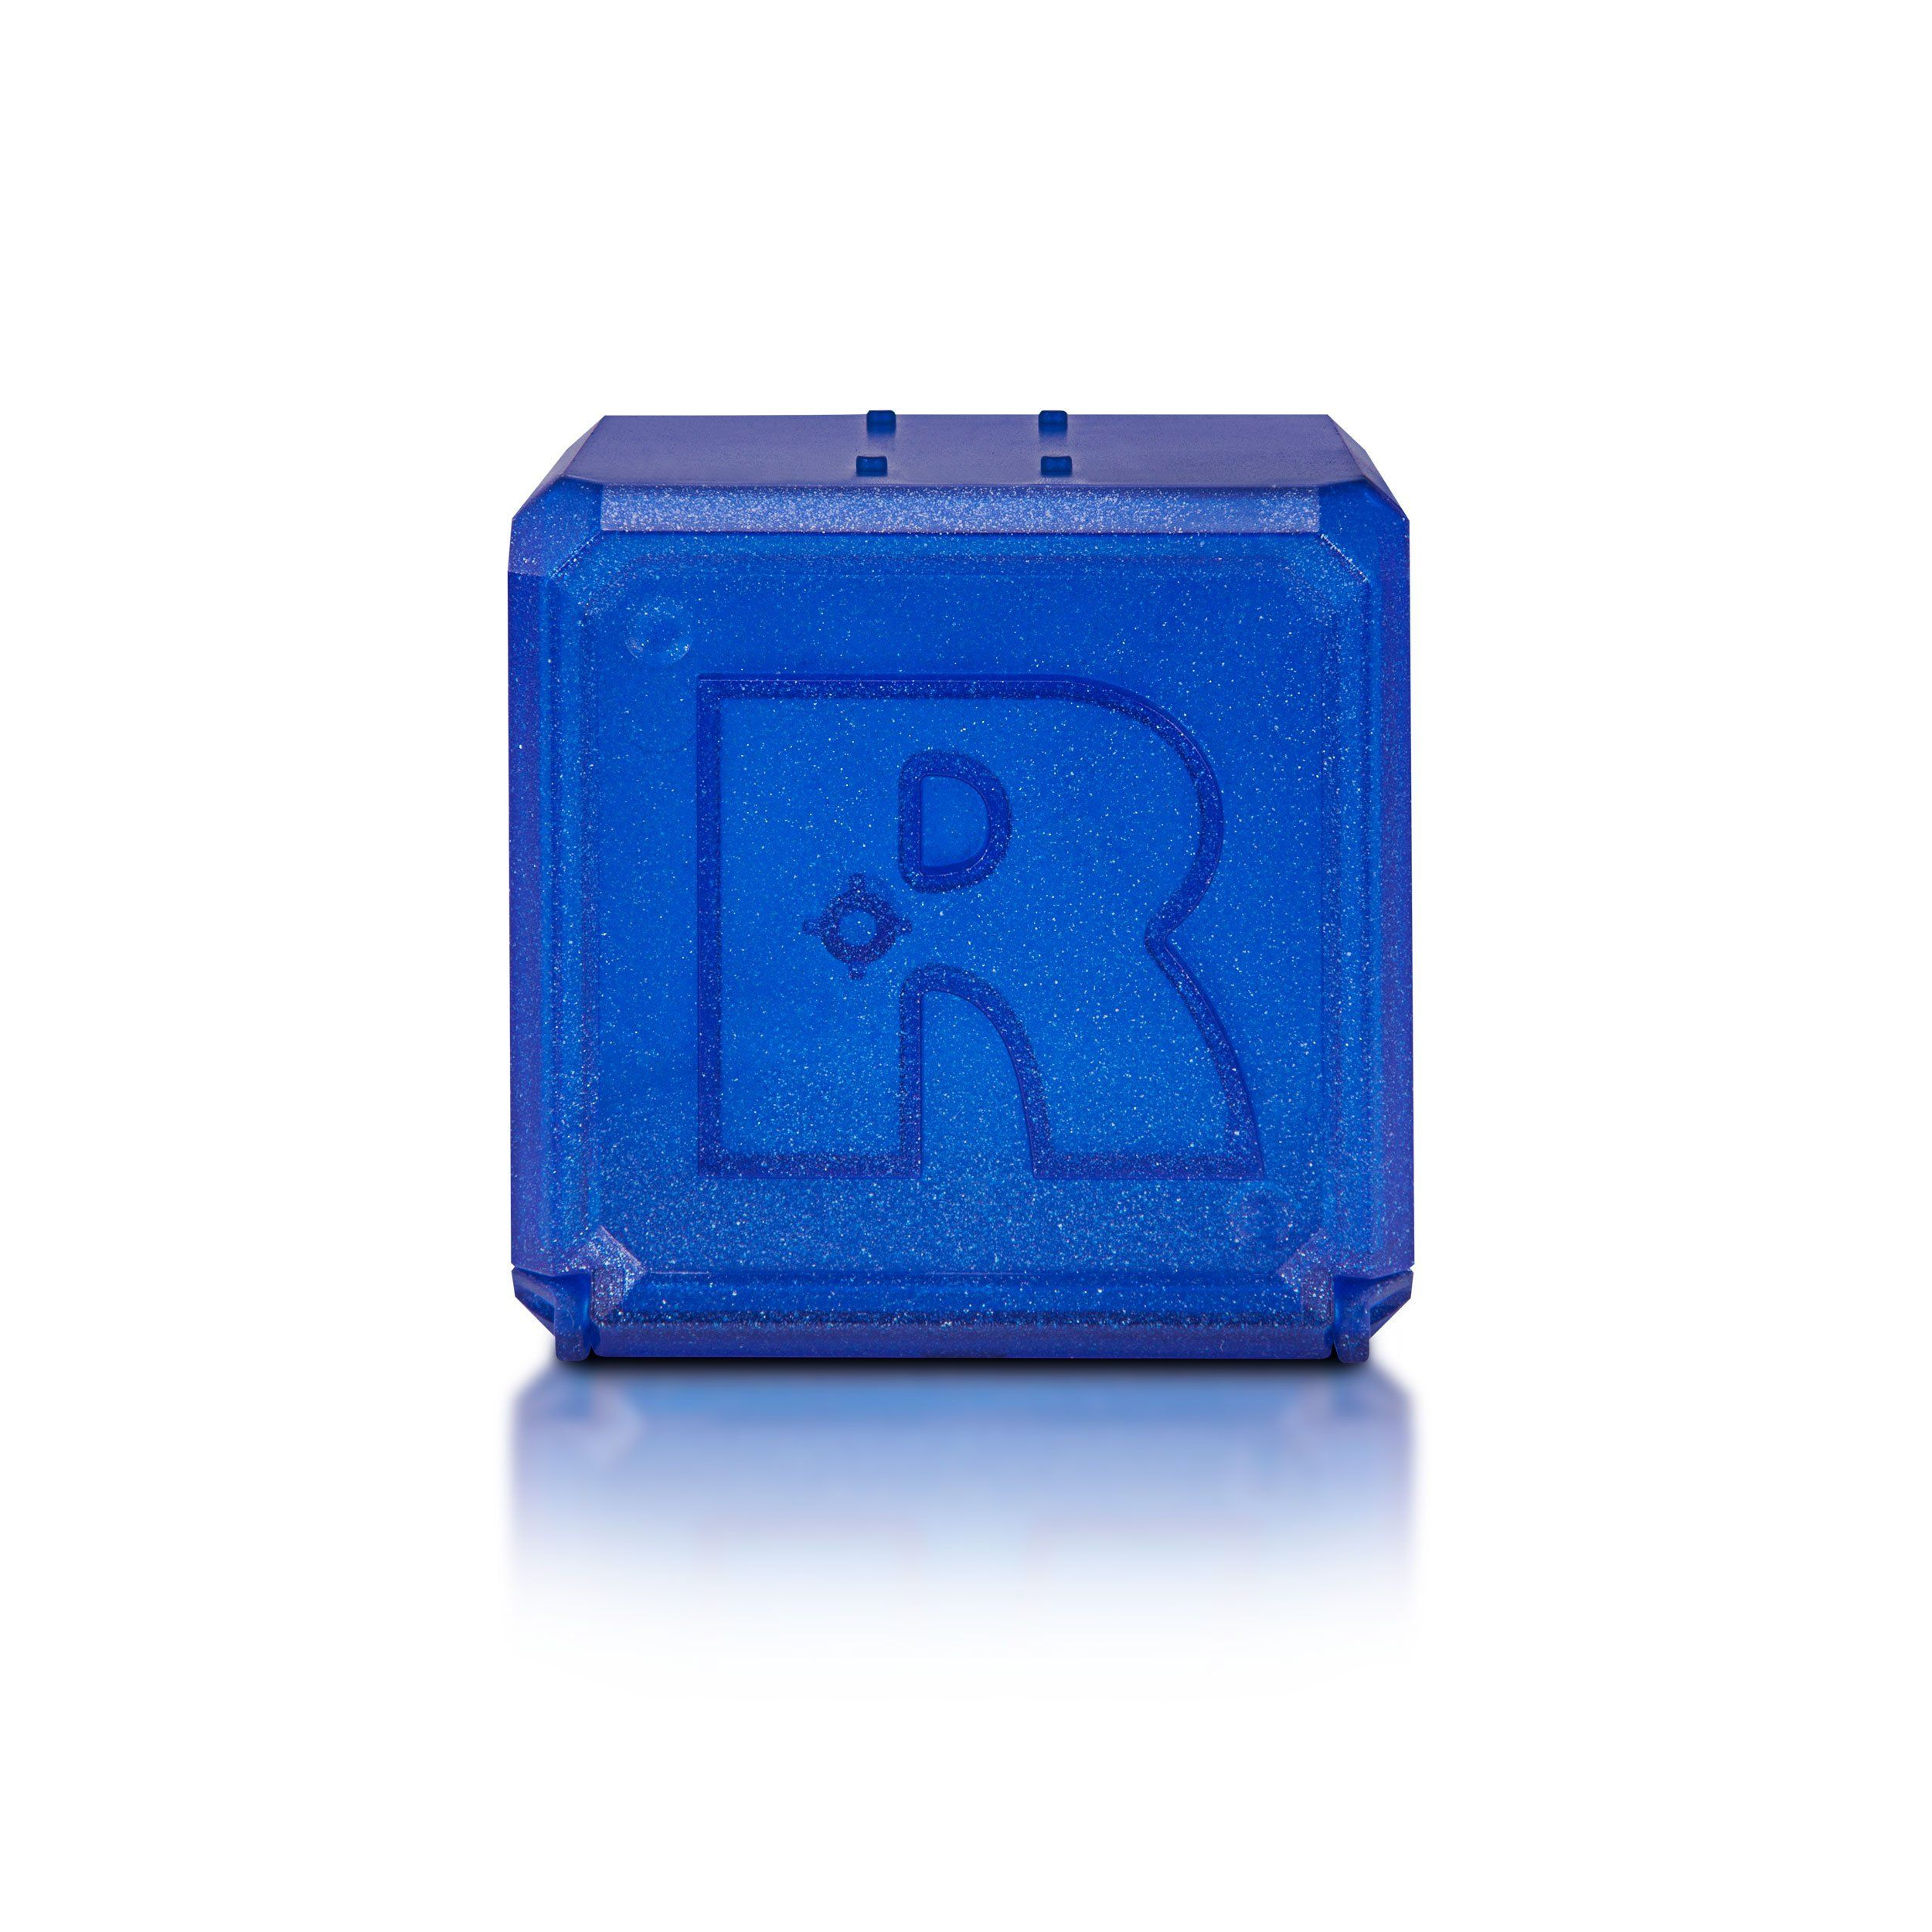 Action Figures Roblox Celebrity Gold Series 2 Mystery Figures Blue Roblox Celebrity Mystery Polybag Of 6 Action Figures Series 2 Discover More By Checking Out The Picture Web Link This Is An Action Figures Roblox Mystery